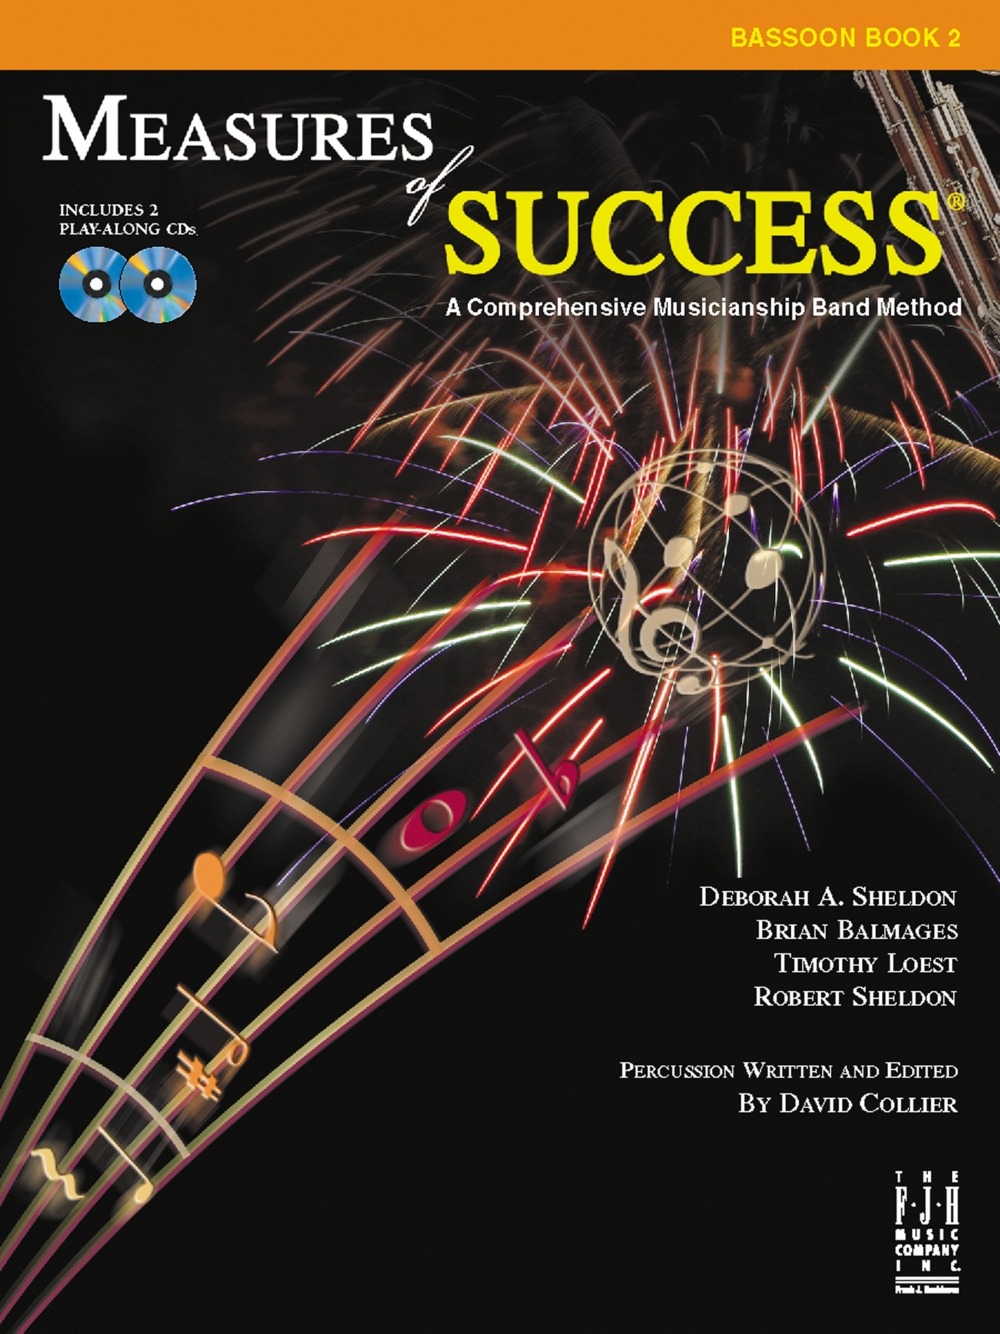 FJH Music Measures of Success Bassoon Book 2 by